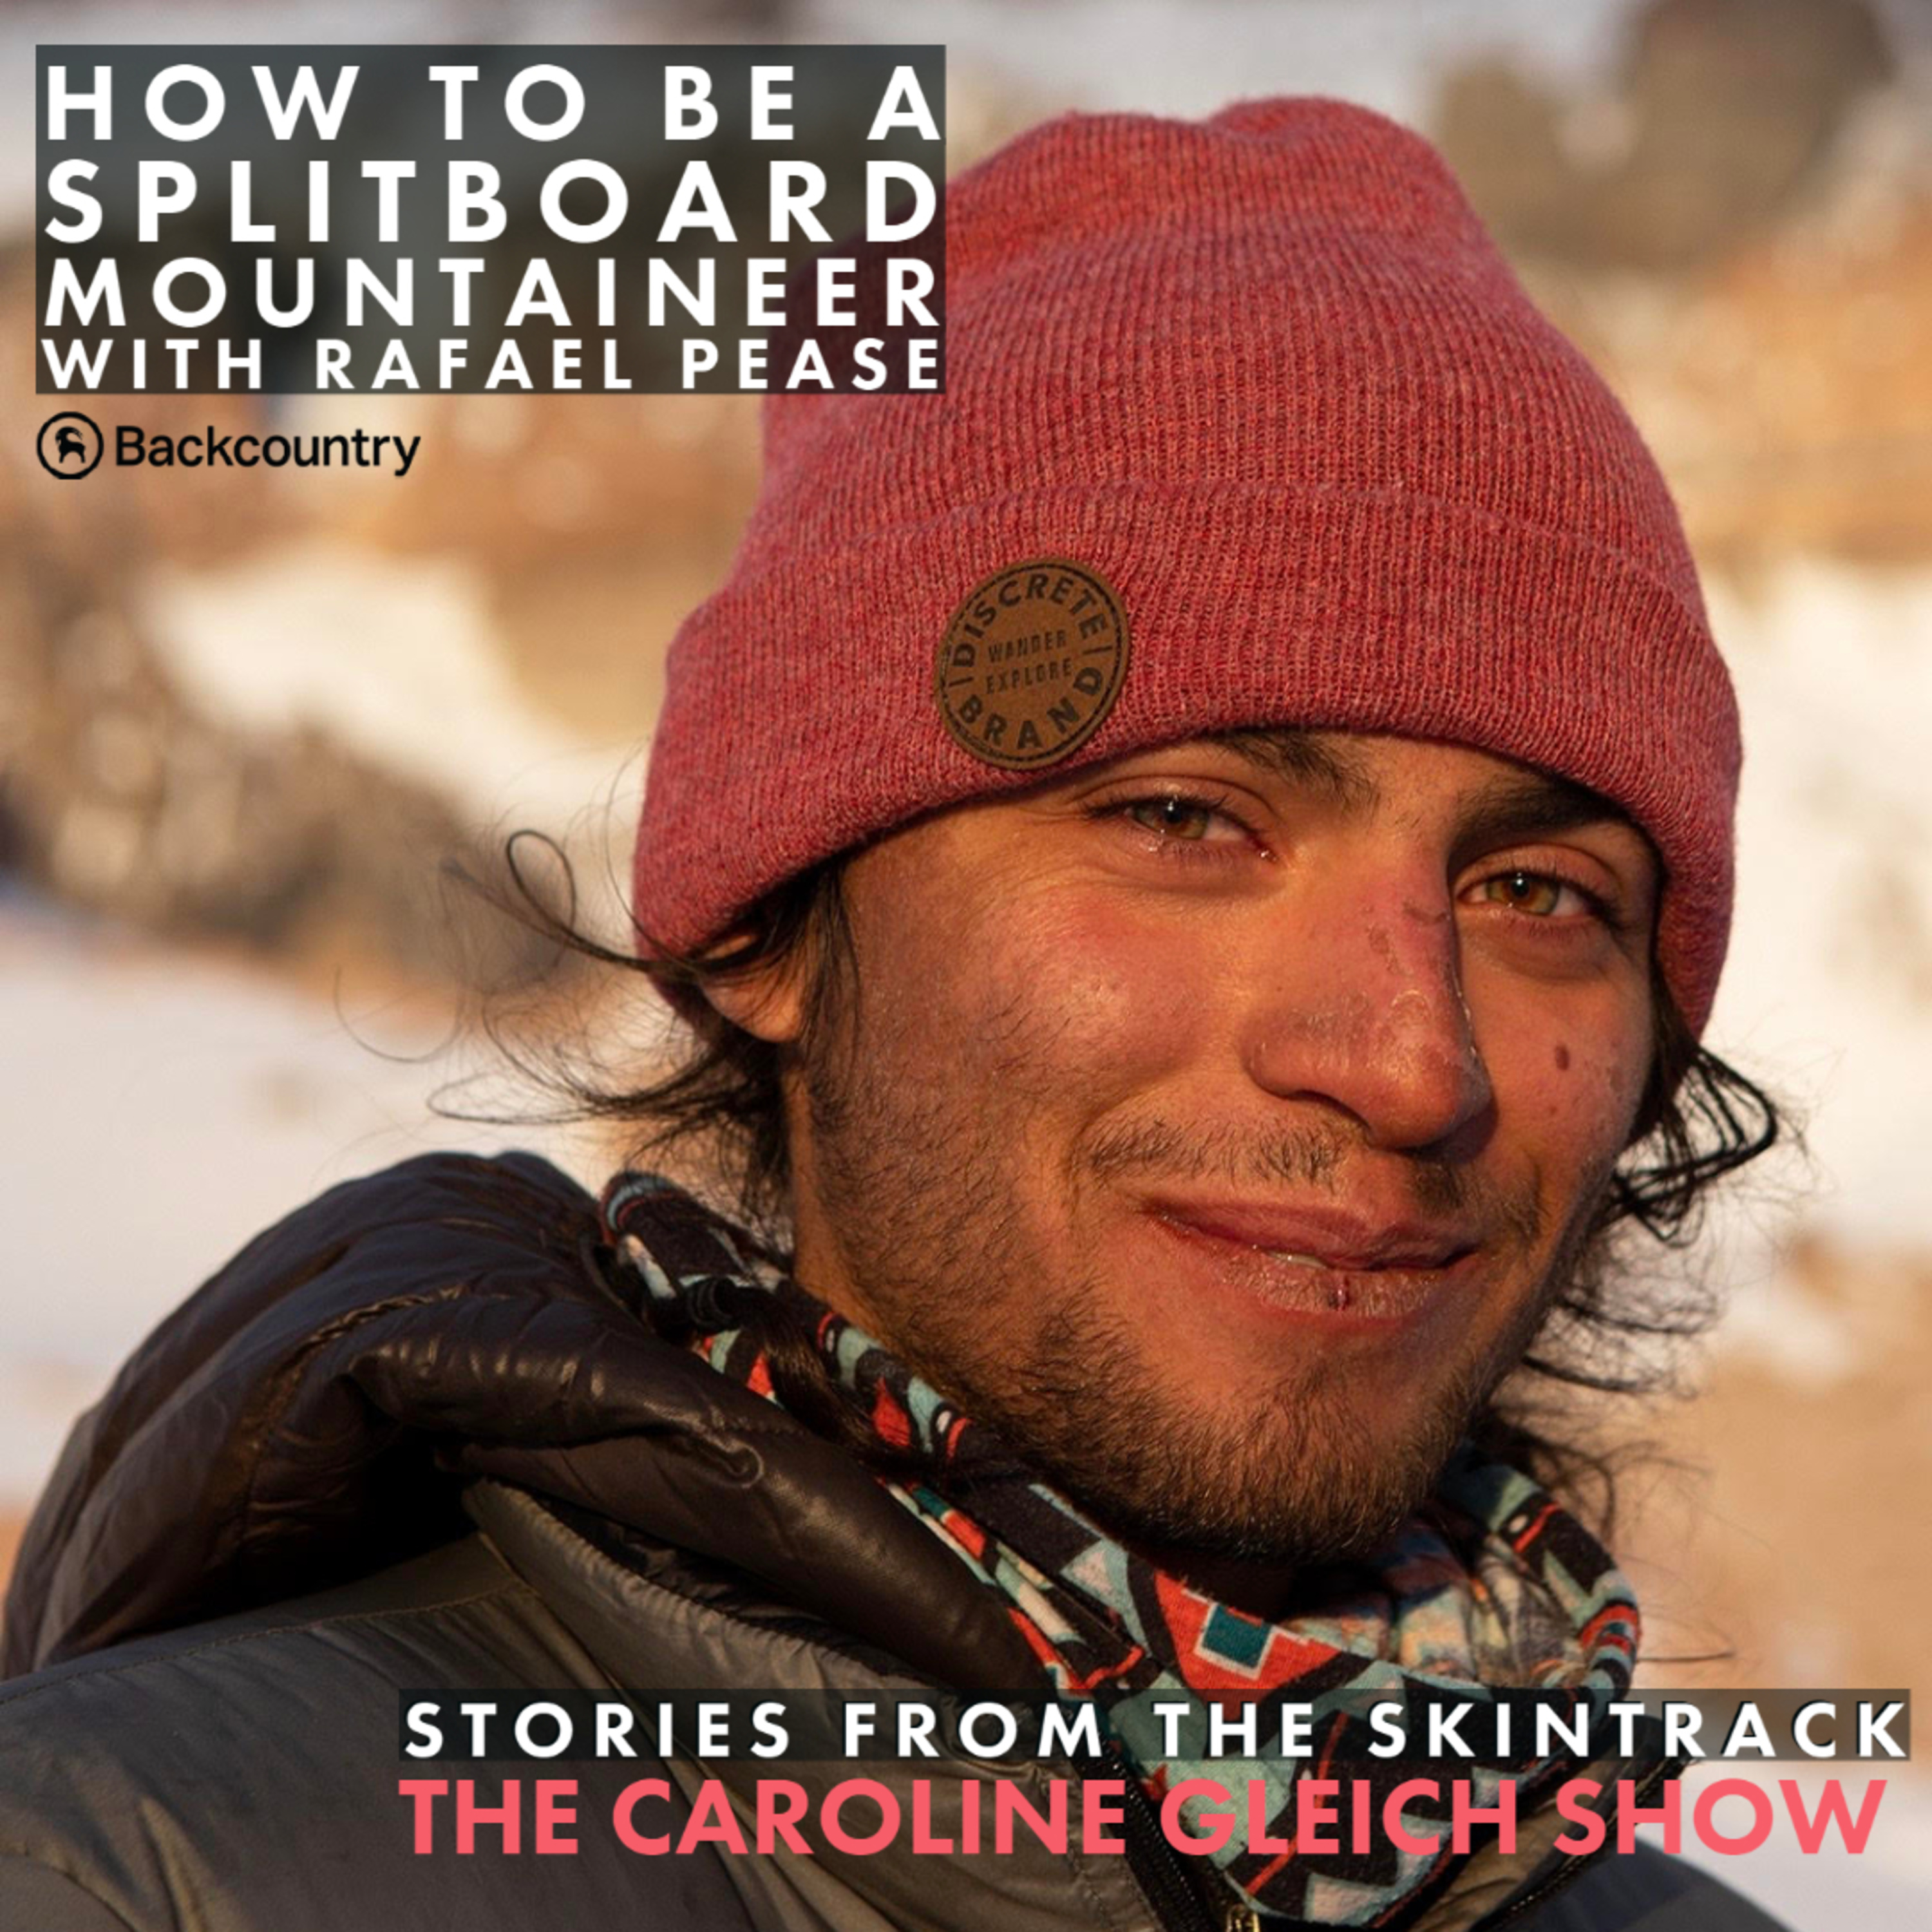 How to be a Splitboard Mountaineer with Rafael Pease: Stories from the Skintrack Episode 2